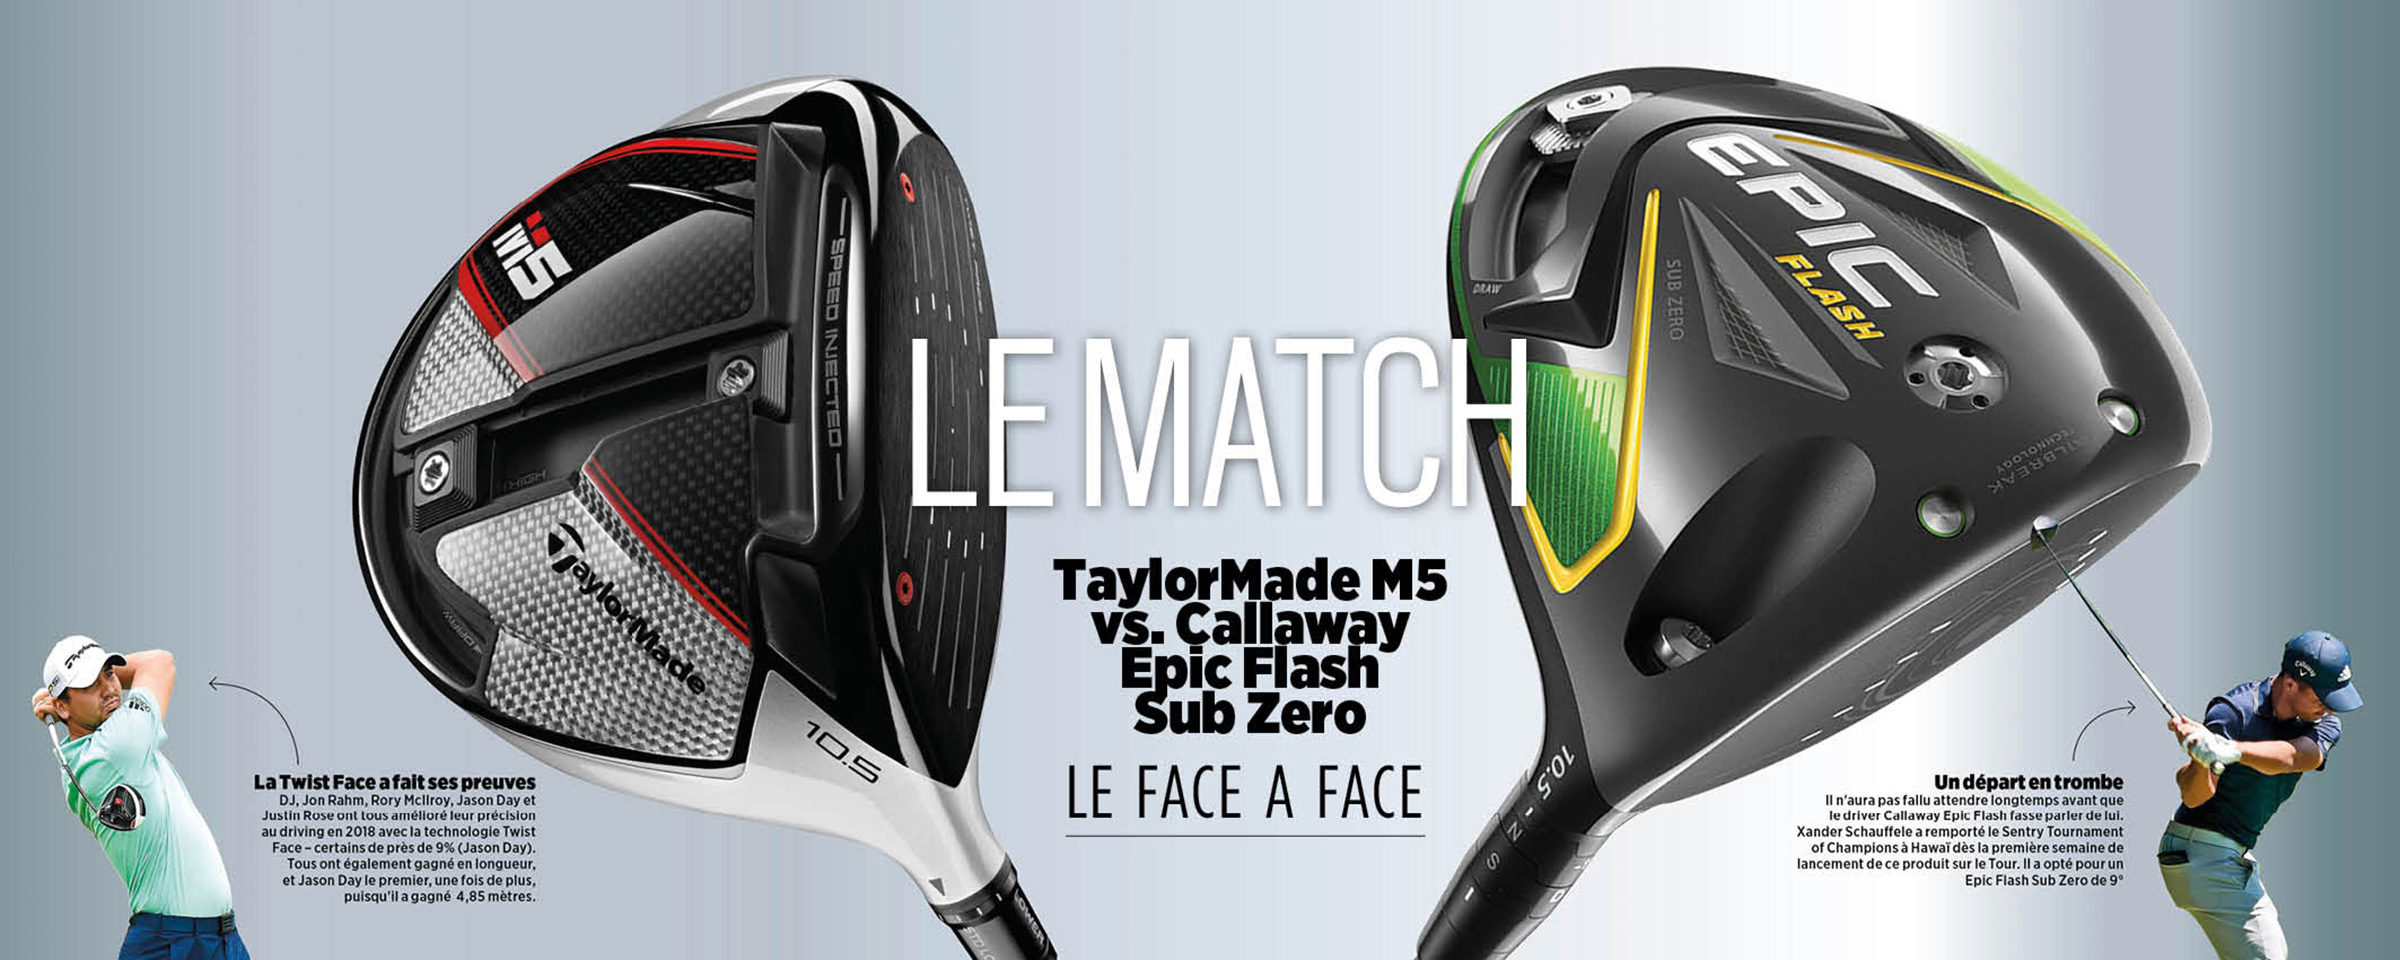 Le Match TaylorMade M5 vs Callaway Epic Flash Sub Zero